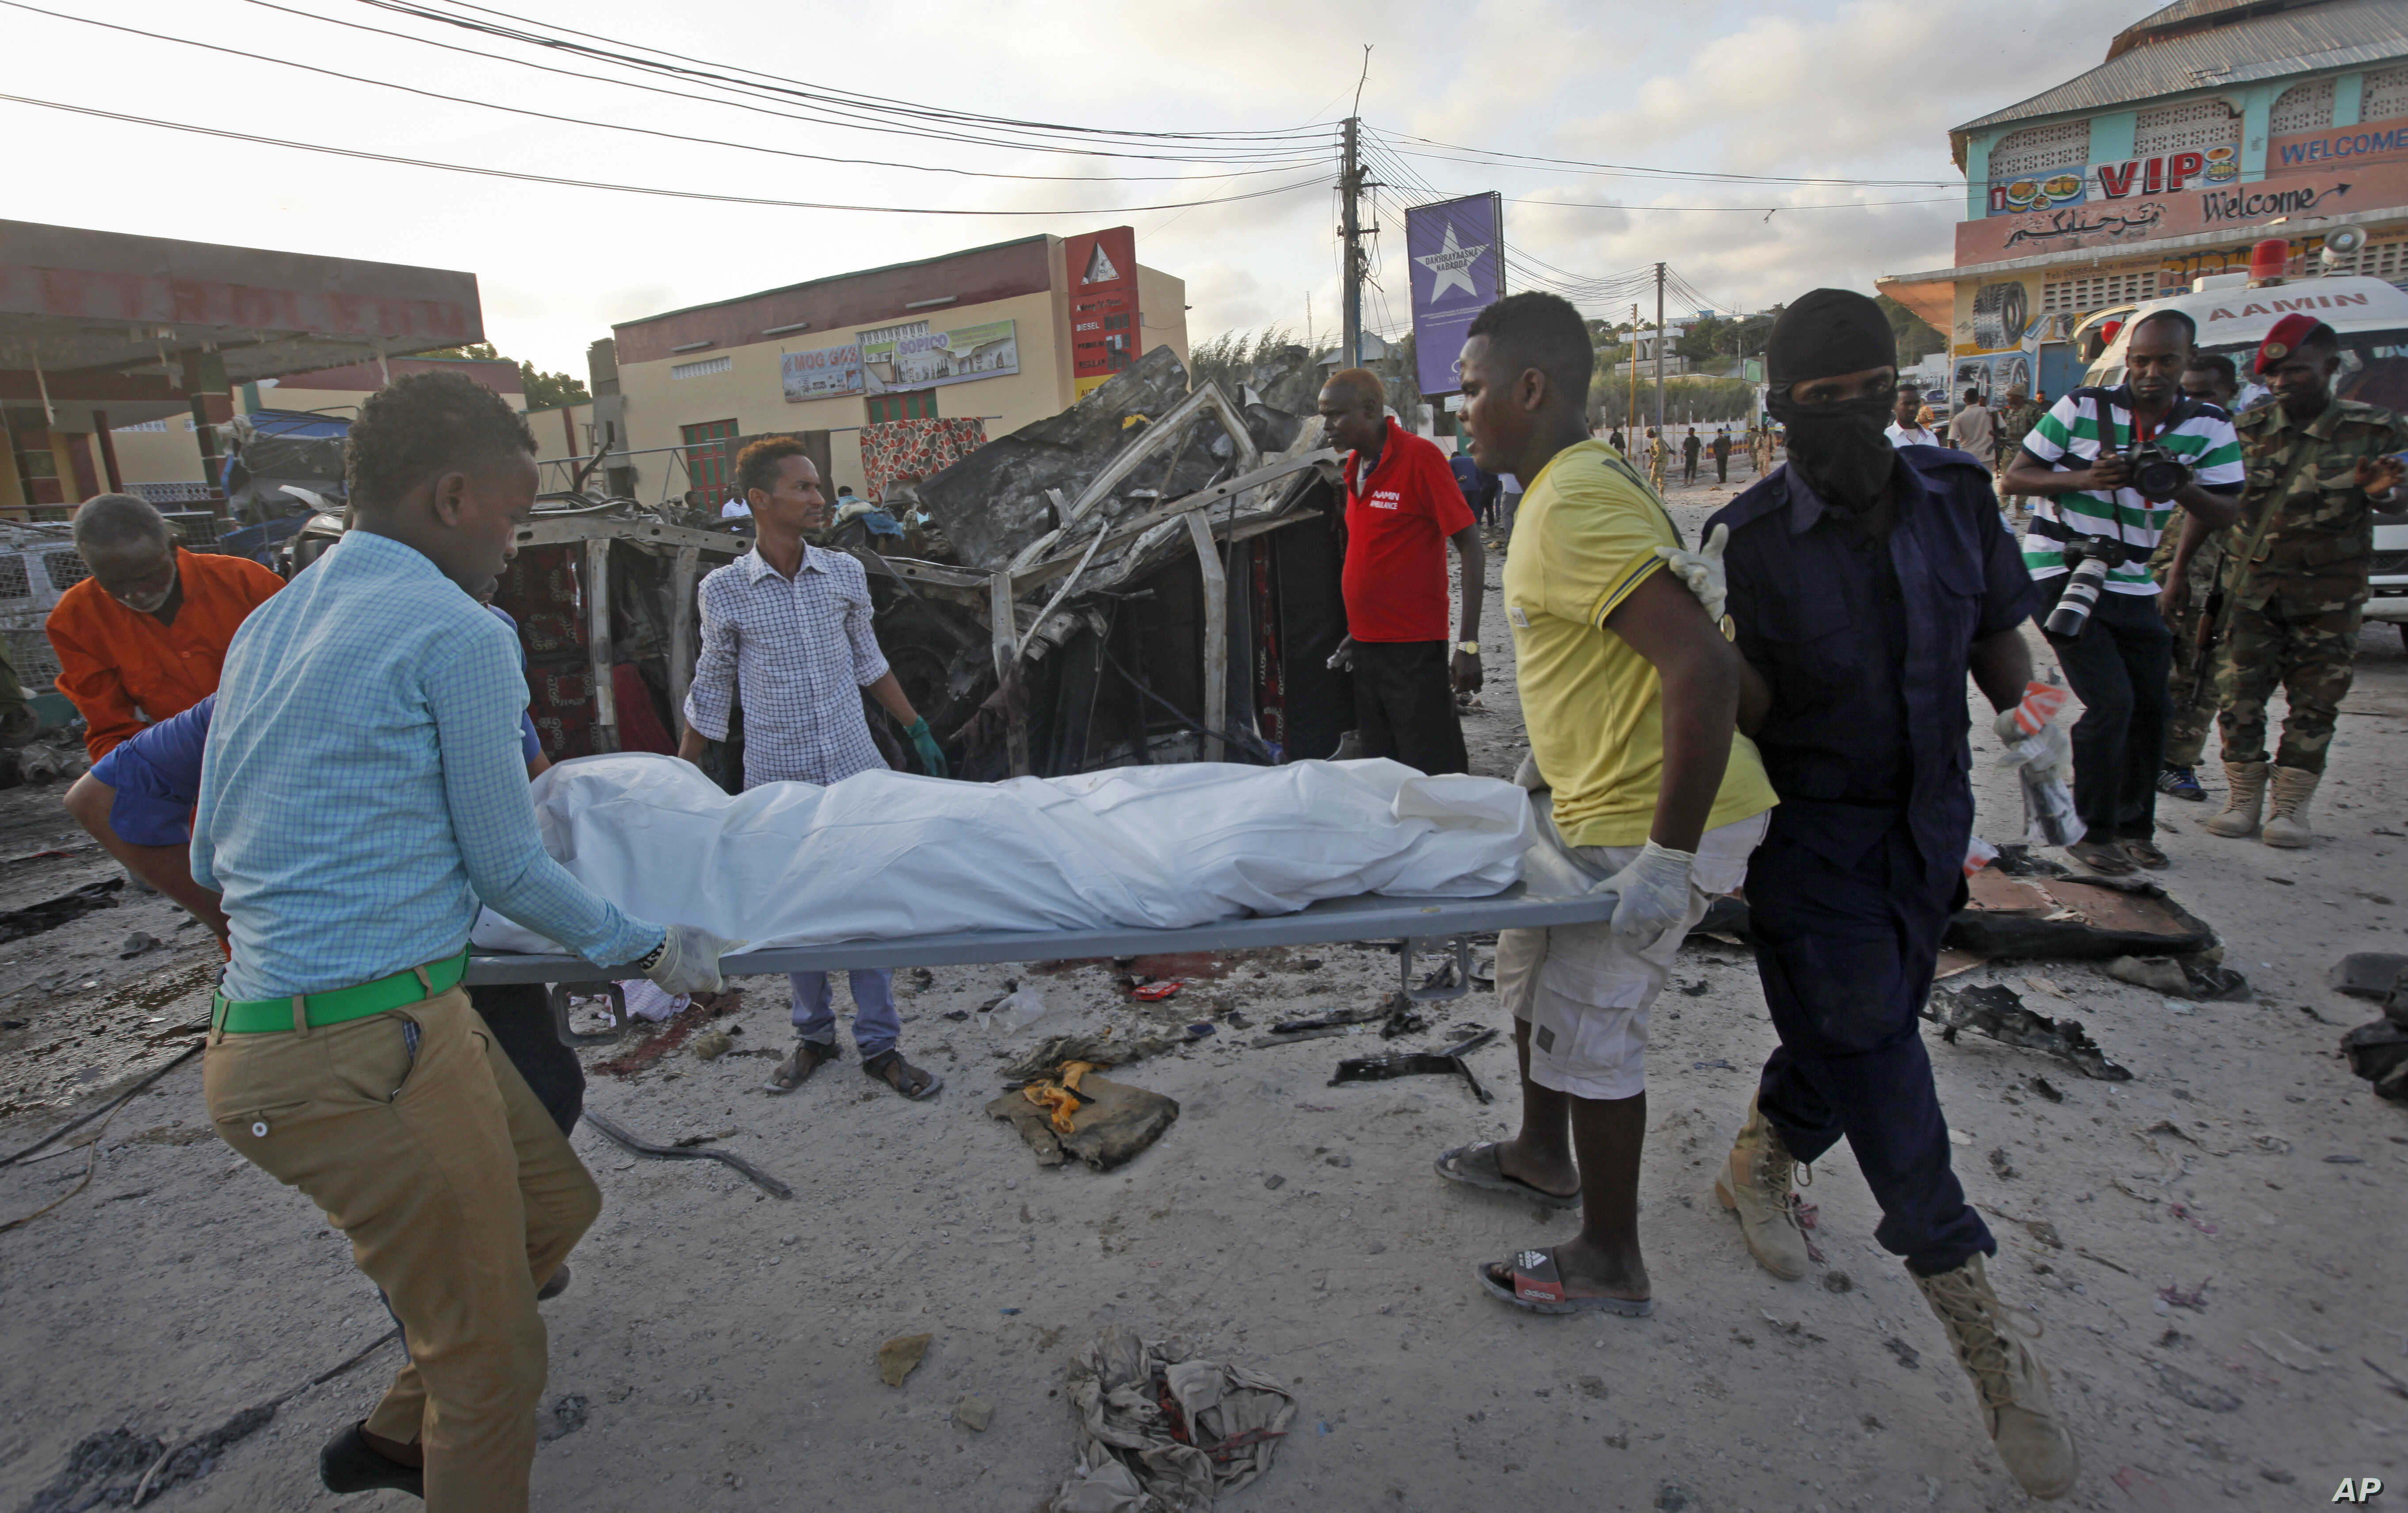 Somalis carry away the body of a civilian who was killed in a car bomb attack in Mogadishu, Somalia, Sept. 28, 2017. Police say the explosion outside a restaurant in Mogadishu's Hamarweyne district has killed at least seven people, mostly civilians.